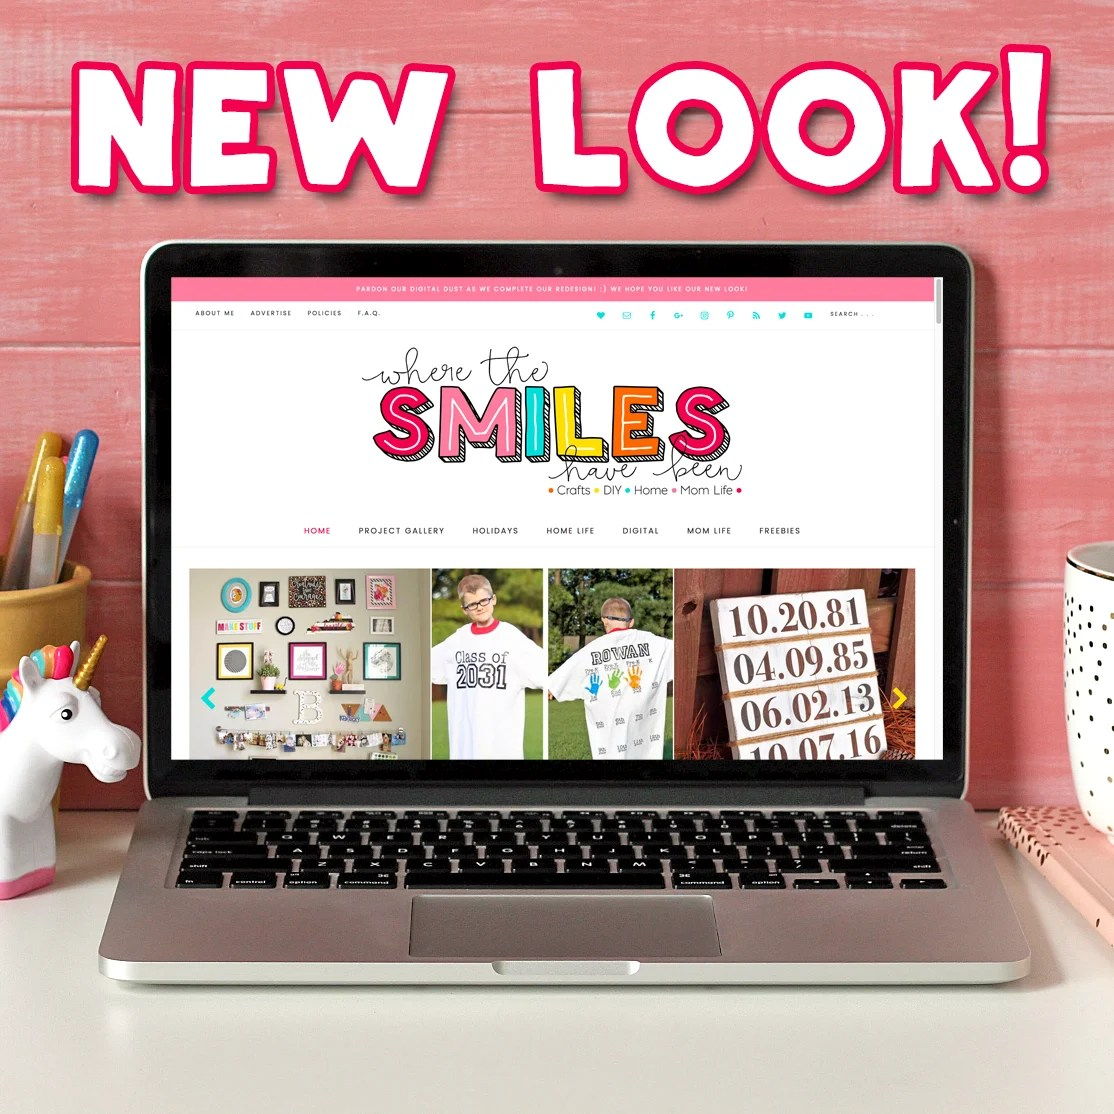 WTSHB Has a New Look! Check Out My Blog Redesign! | Where The Smiles Have Been